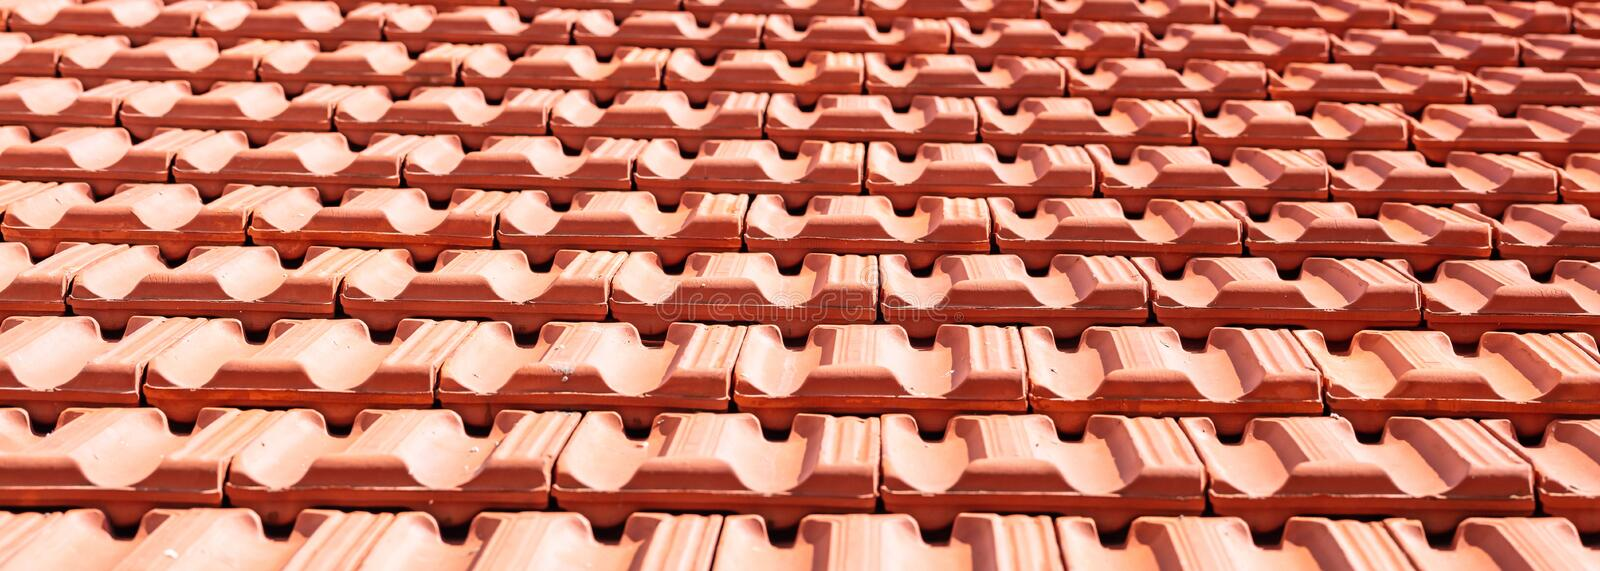 Roofing construction. Roof ceramic tiles texture background royalty free stock image